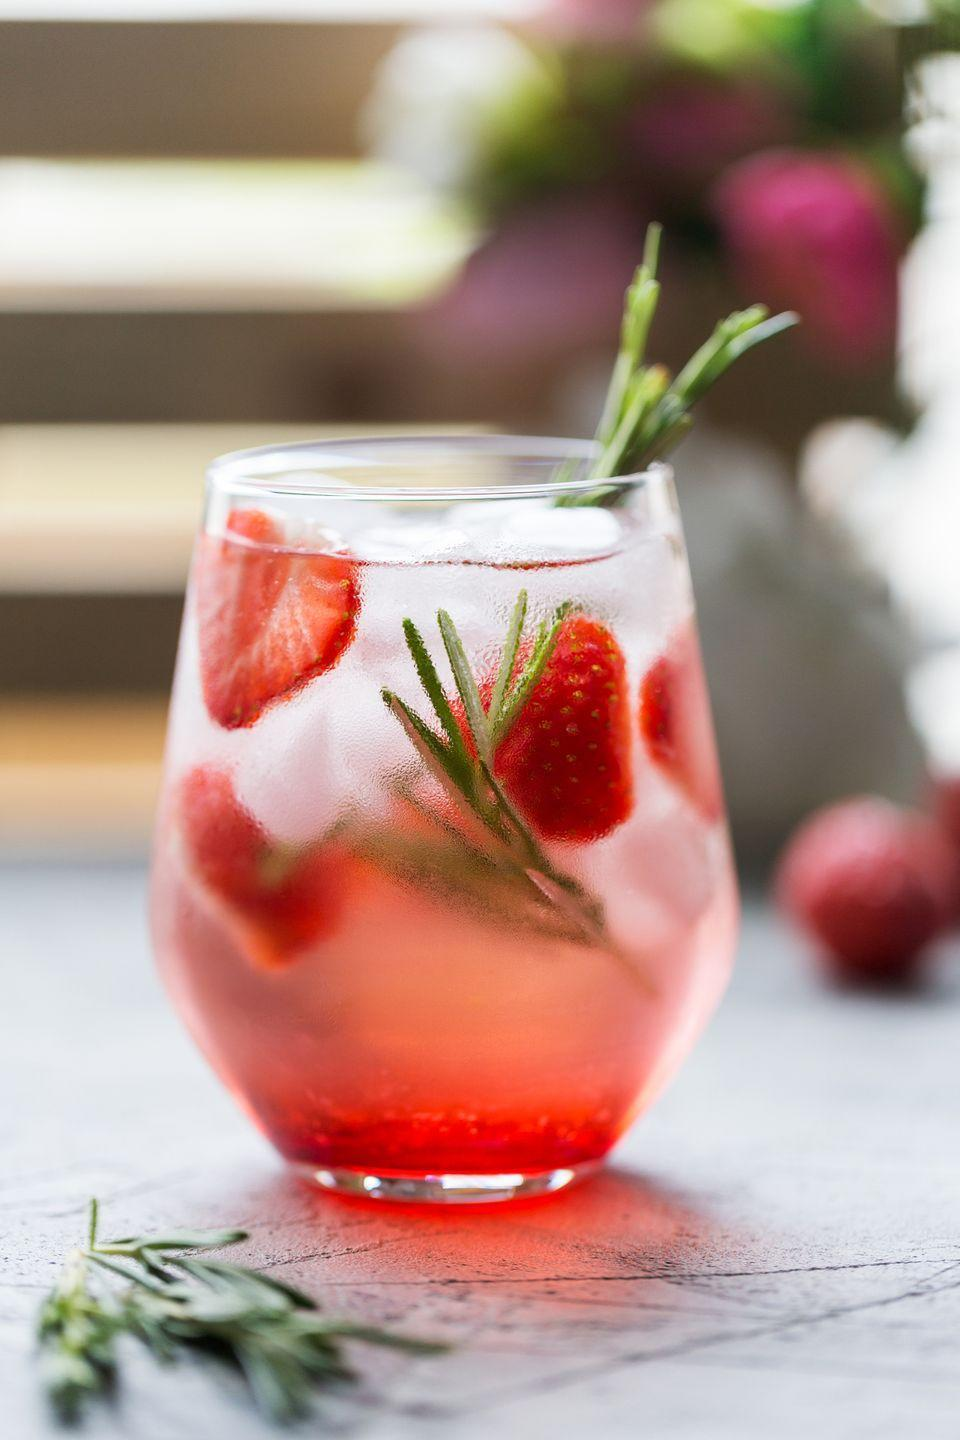 """<p>If you don't already know, now you do: LaCroix cocktails are the easiest and most refreshing drink you can make. Pick your pleasure, add a splash of vodka, and stir. Need ideas? Try this strawberry spritzer from <a href=""""http://sunnysweetdays.com/2014/03/spiked-strawberry-spritzer-recipe.html"""" rel=""""nofollow noopener"""" target=""""_blank"""" data-ylk=""""slk:Sunny Sweet Days."""" class=""""link rapid-noclick-resp"""">Sunny Sweet Days.</a></p>"""